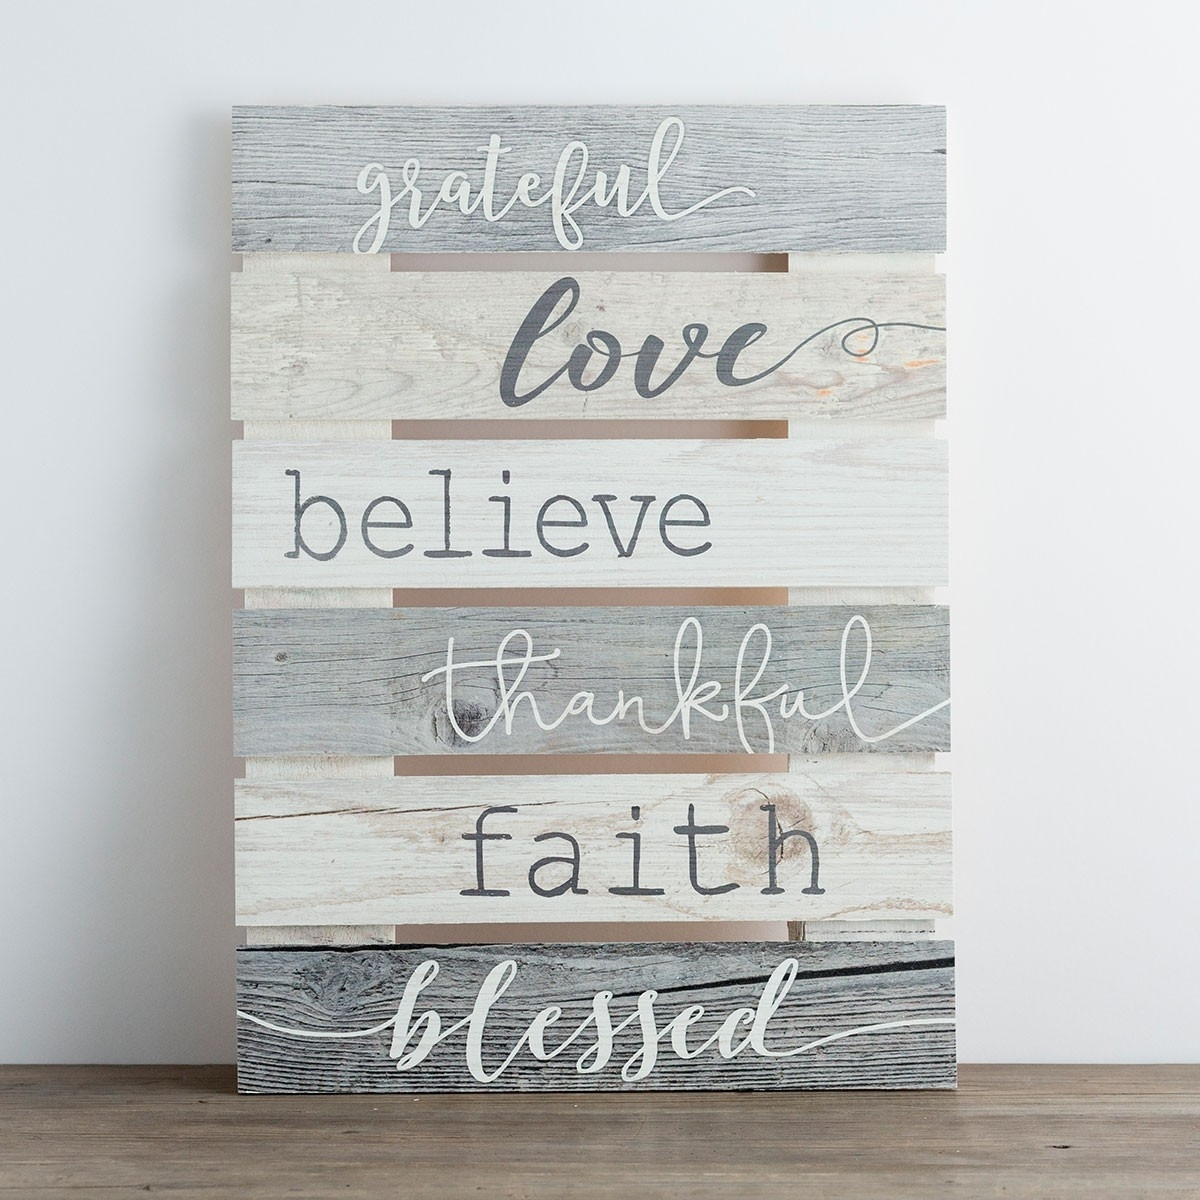 Grateful – Plank Wall Art | Dayspring With Regard To Most Current Plank Wall Art (View 7 of 20)